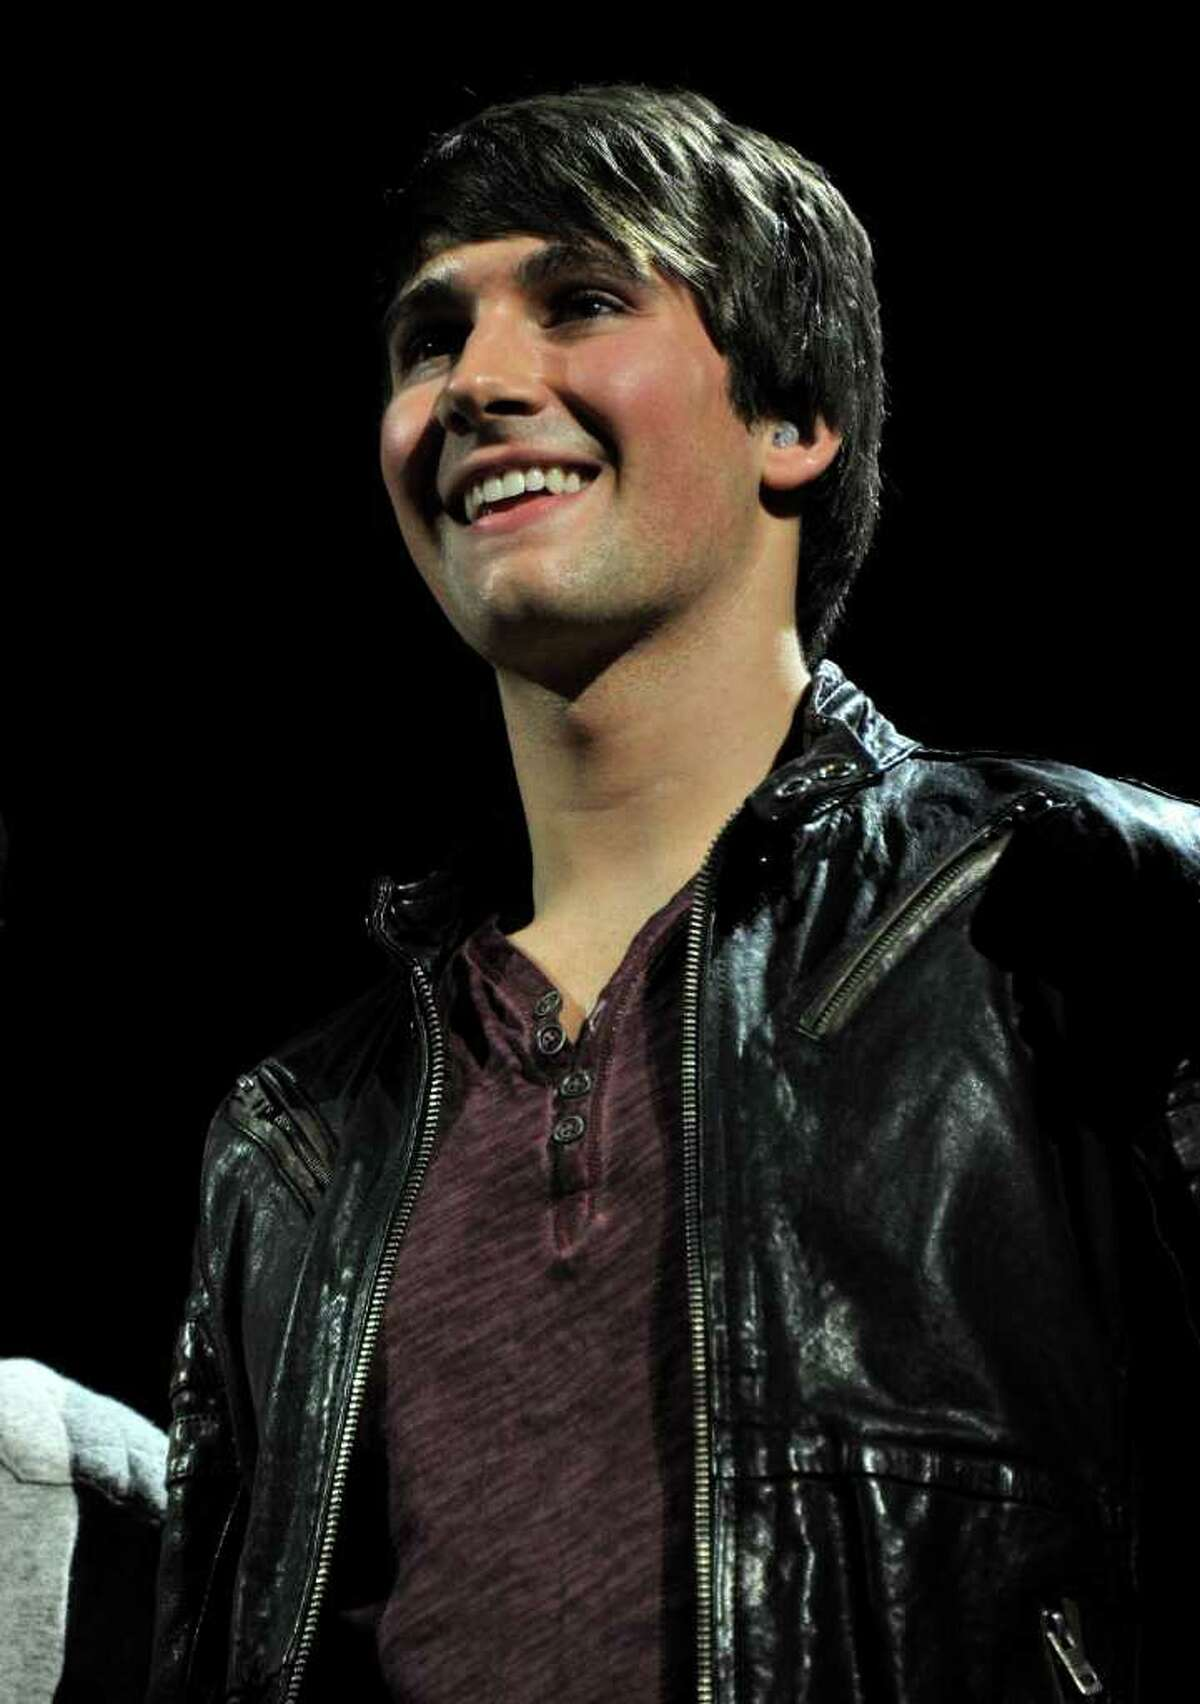 NEW YORK, NY - DECEMBER 09: James Maslow of Big Time Rush speaks onstage during Z100's Jingle Ball 2011, presented by Aeropostale at Madison Square Garden on December 9, 2011 in New York City. (Photo by Stephen Lovekin/Getty Images)